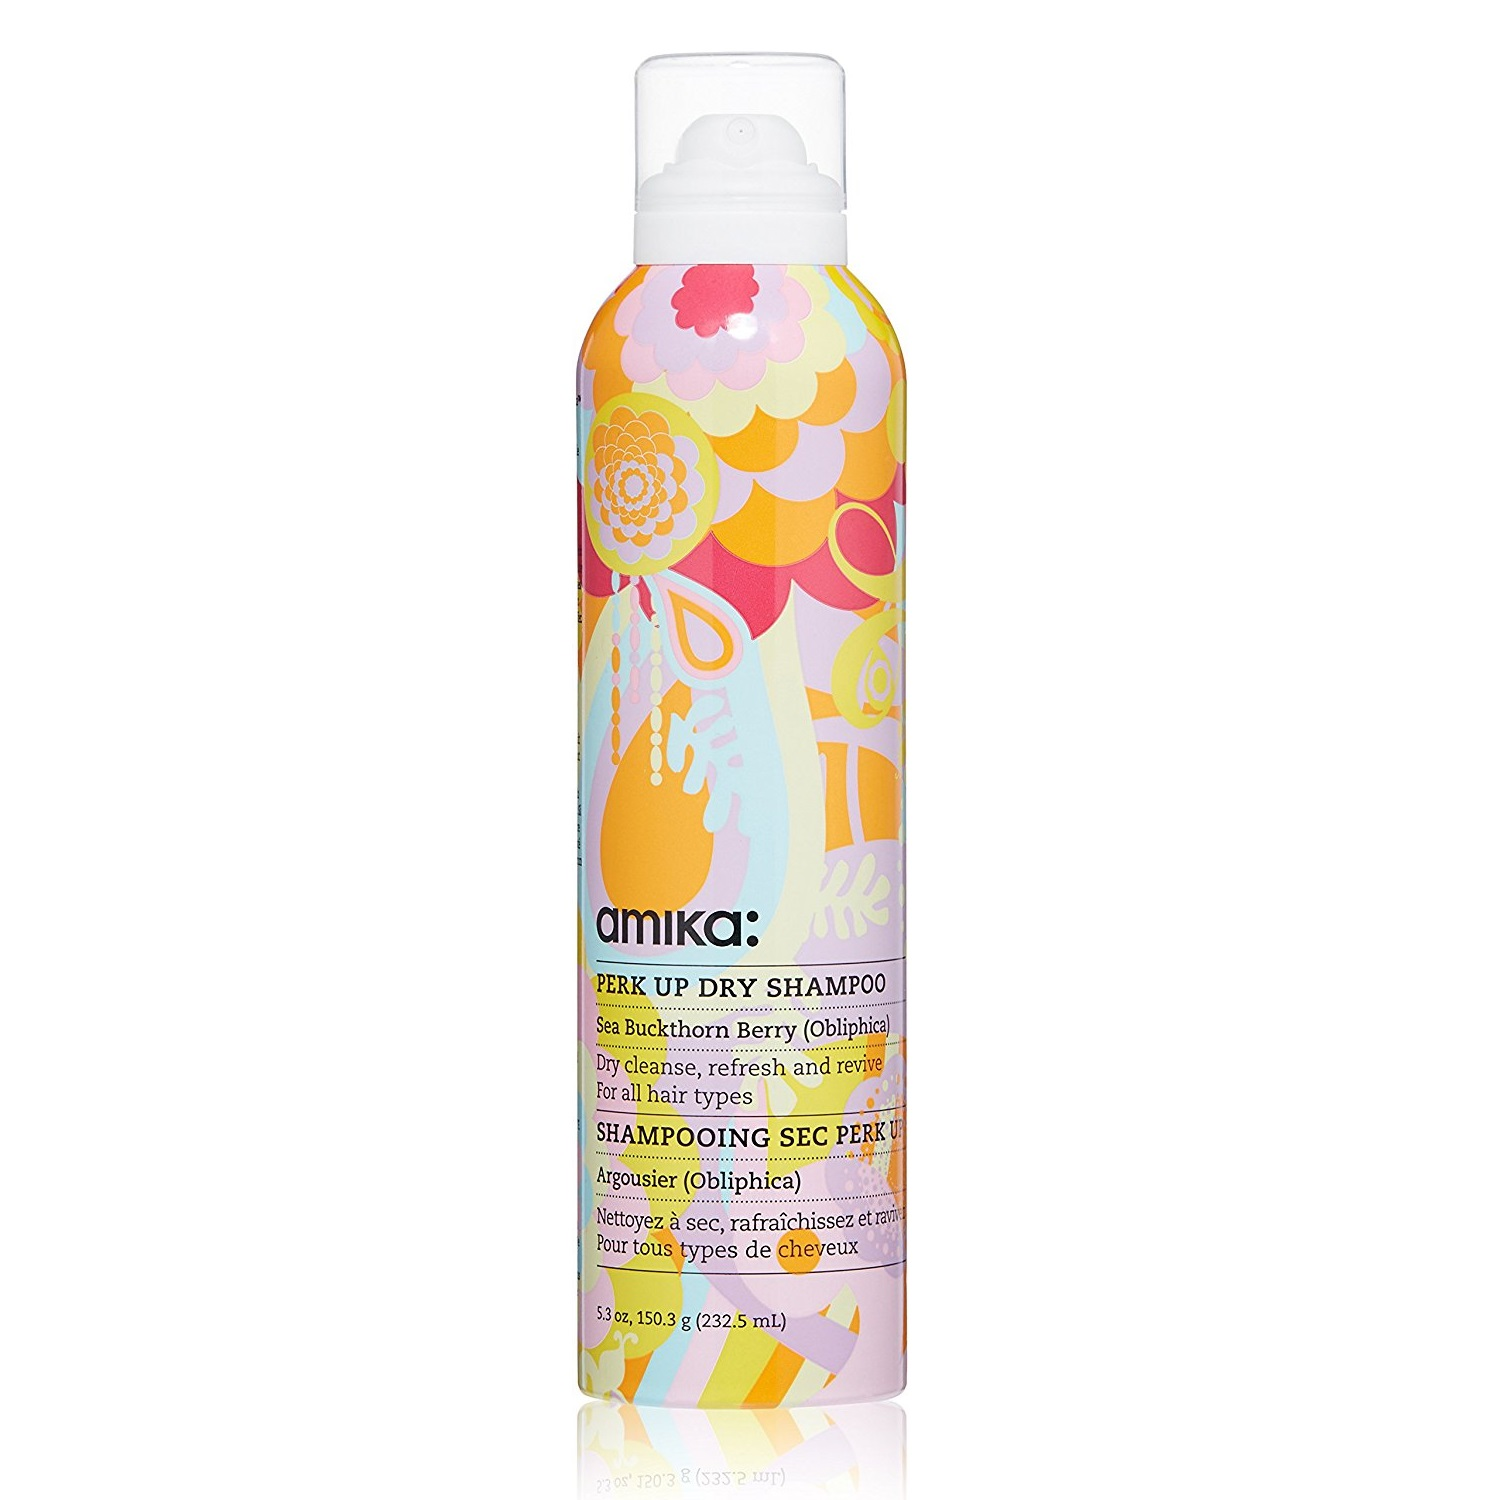 Amika Perk Up Dry Shampoo – Available in 2 Sizes